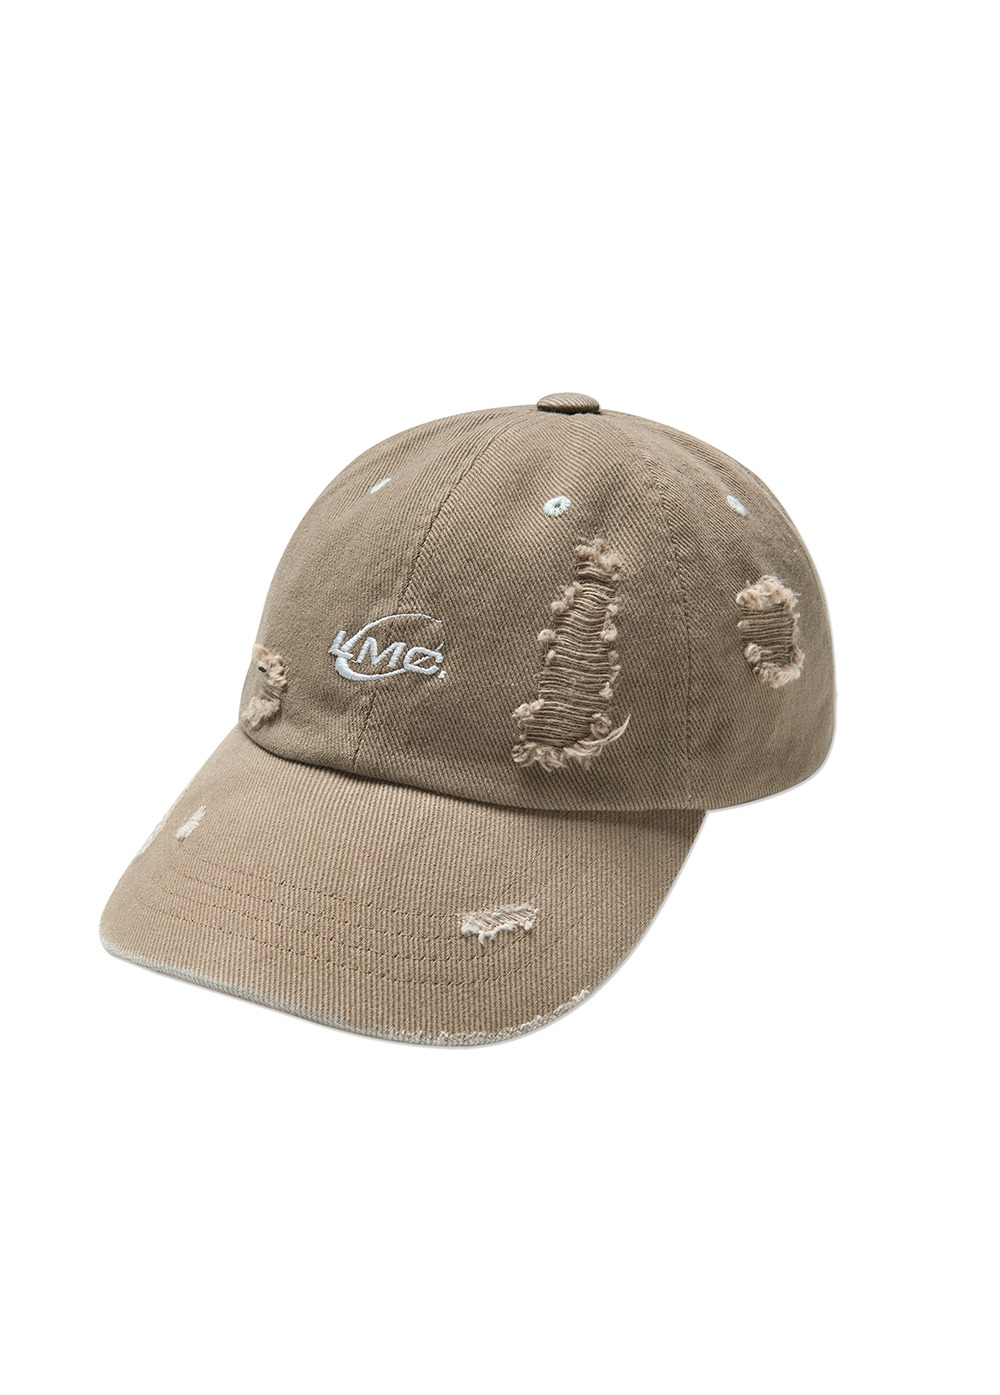 LMC SHREDDED PLANET 6 PANEL CAP beige